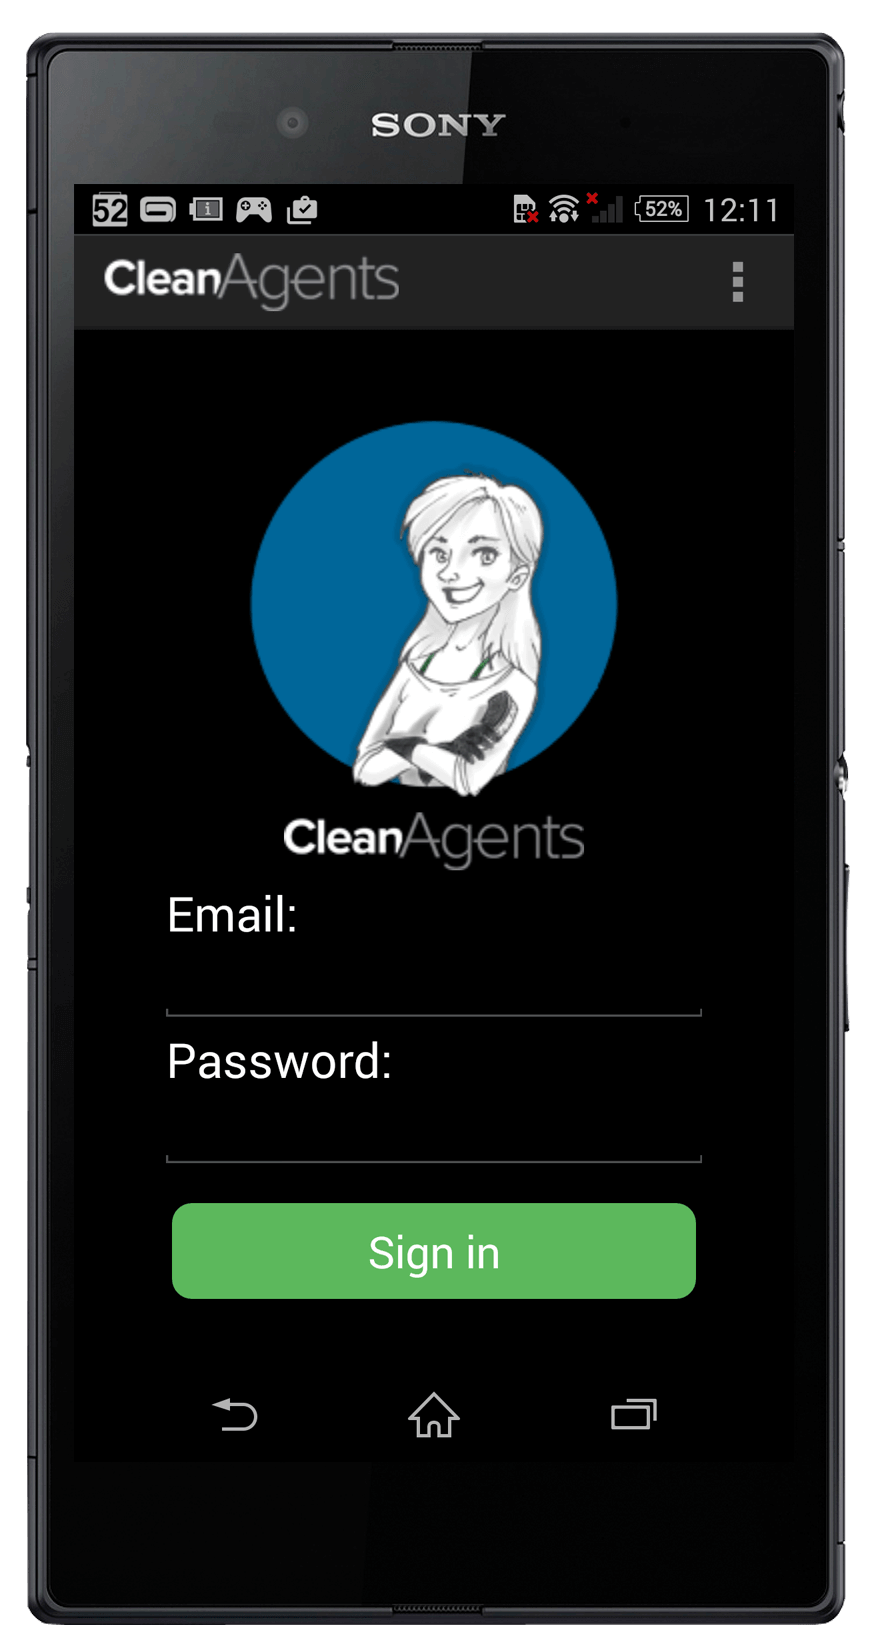 CleanAgents android app development